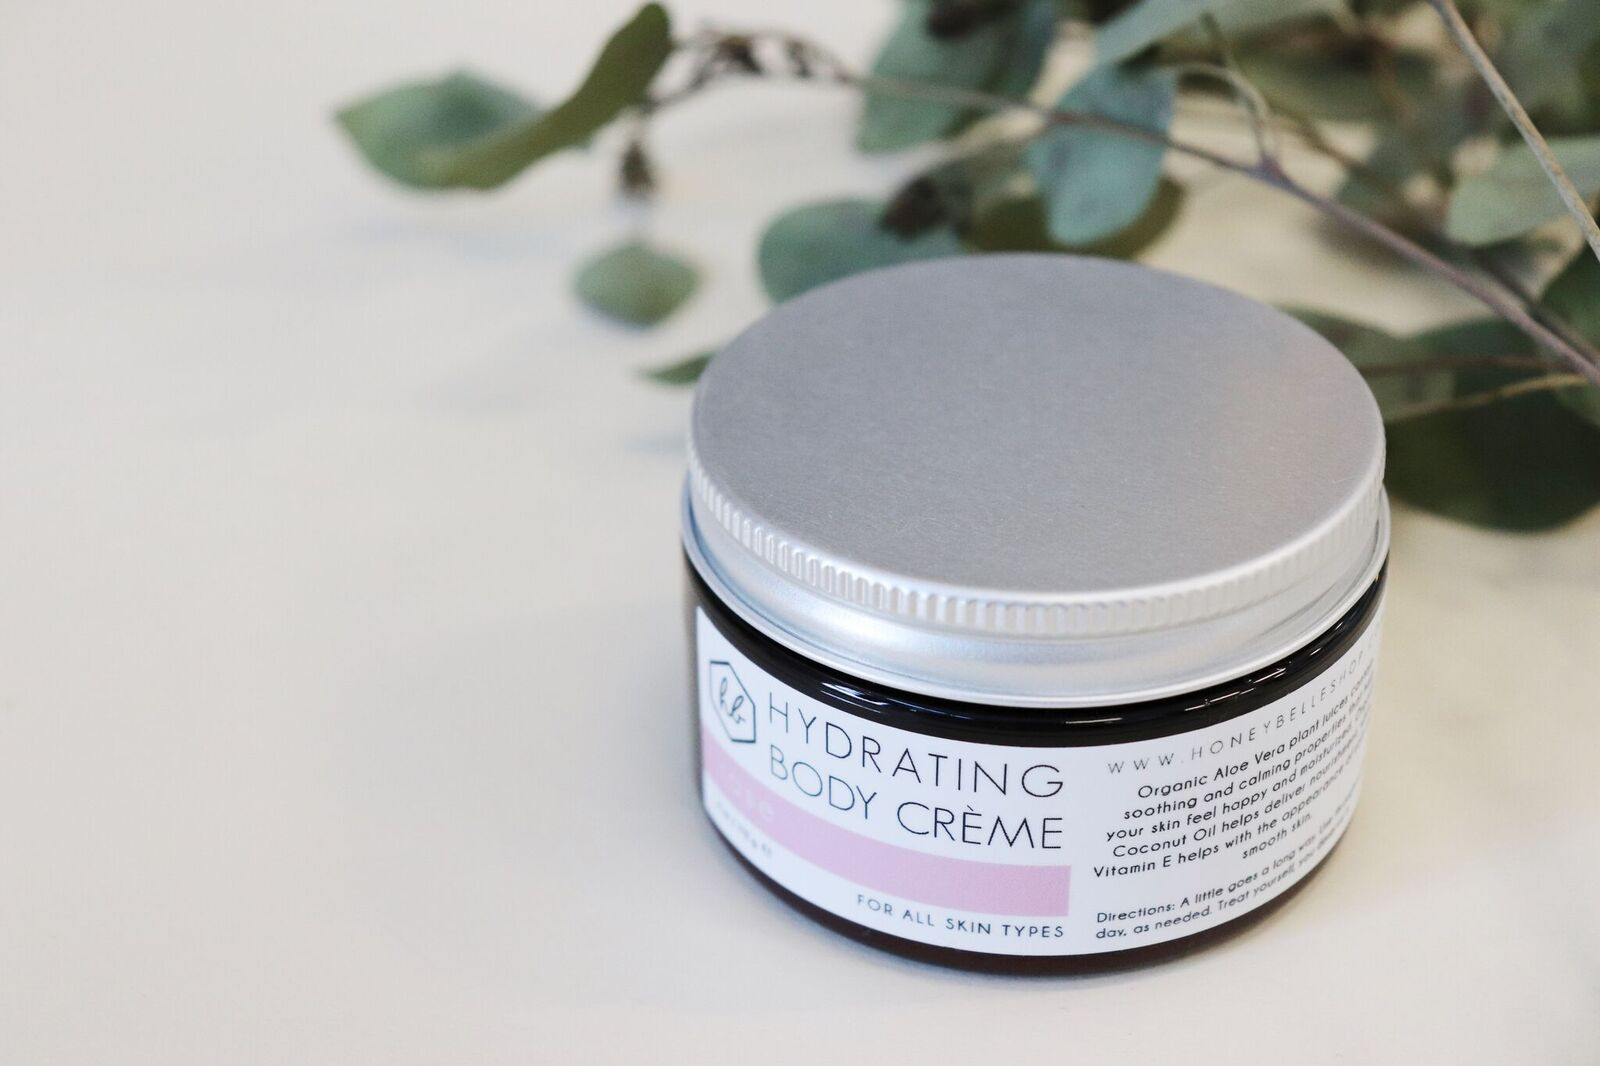 Hydrating Rose Body Creme